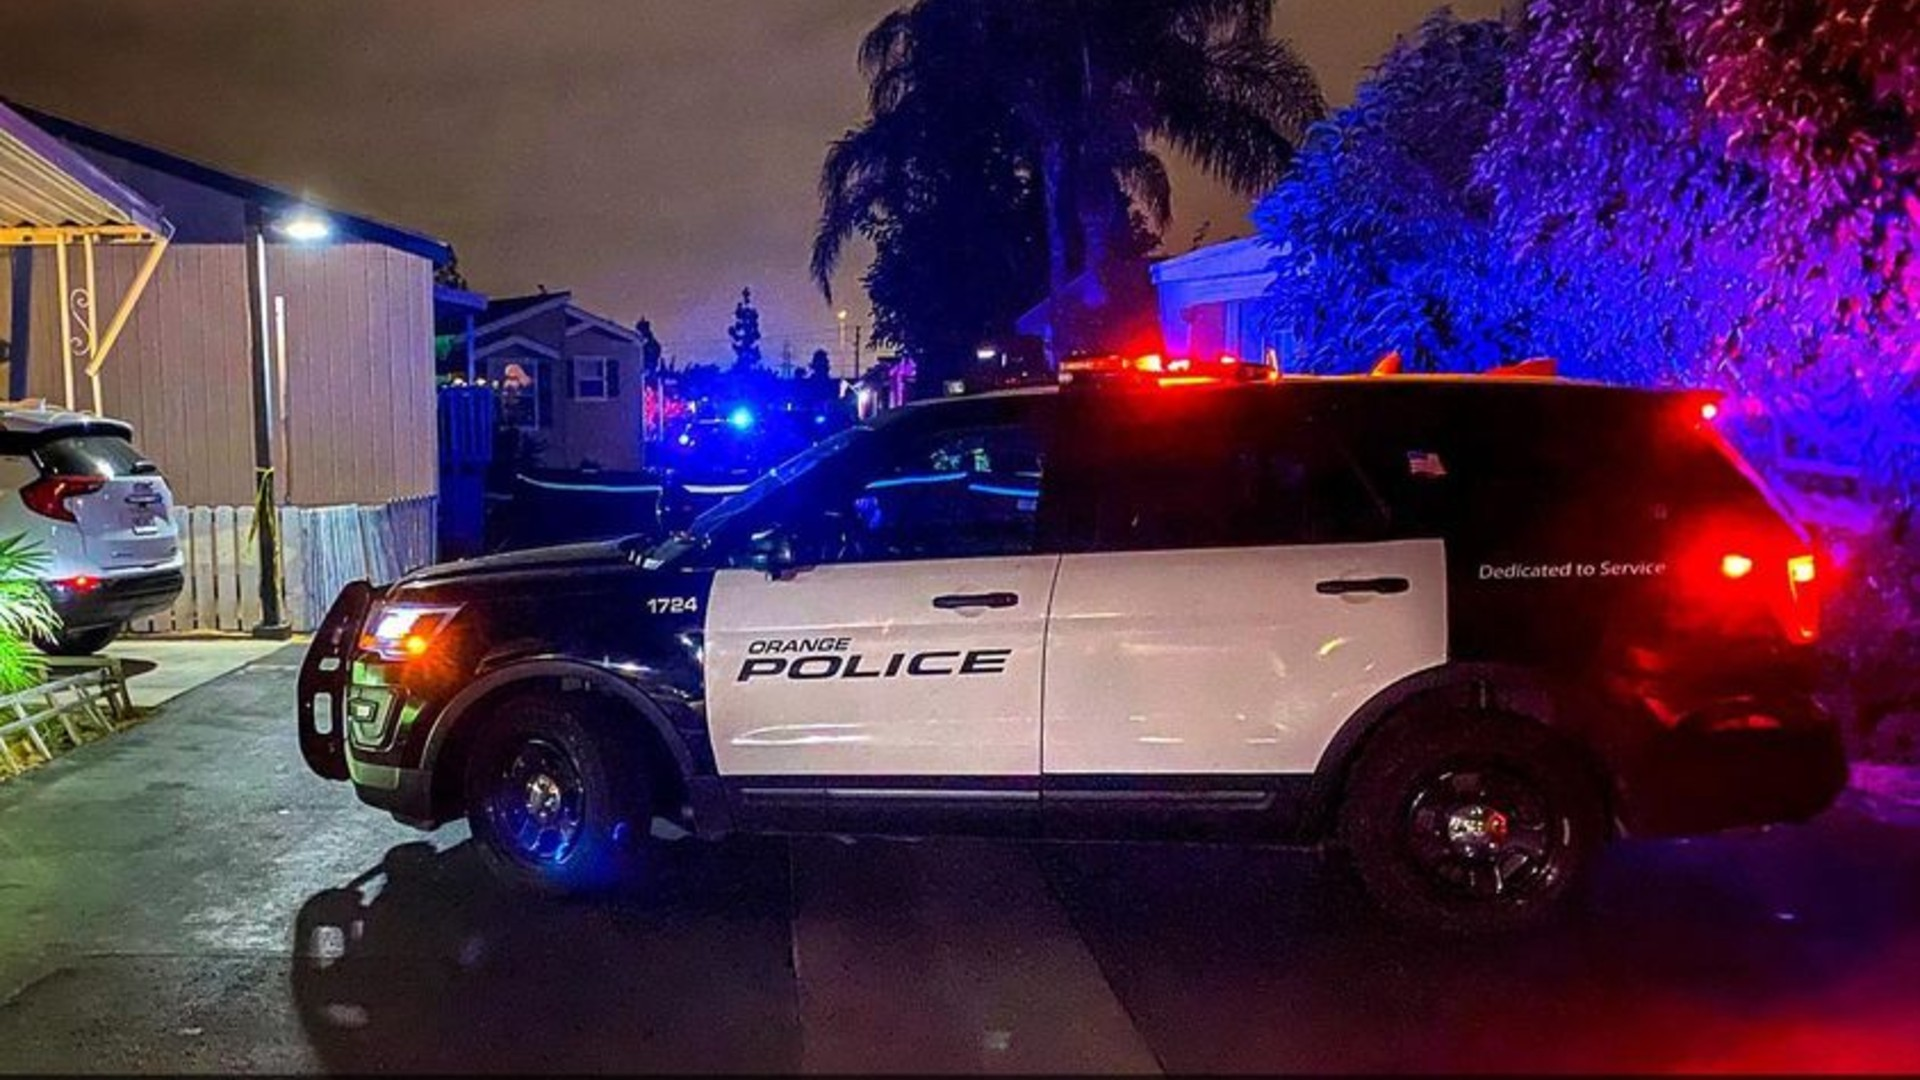 An Orange Police Department vehicle is seen in a photo on the agency's Facebook page.